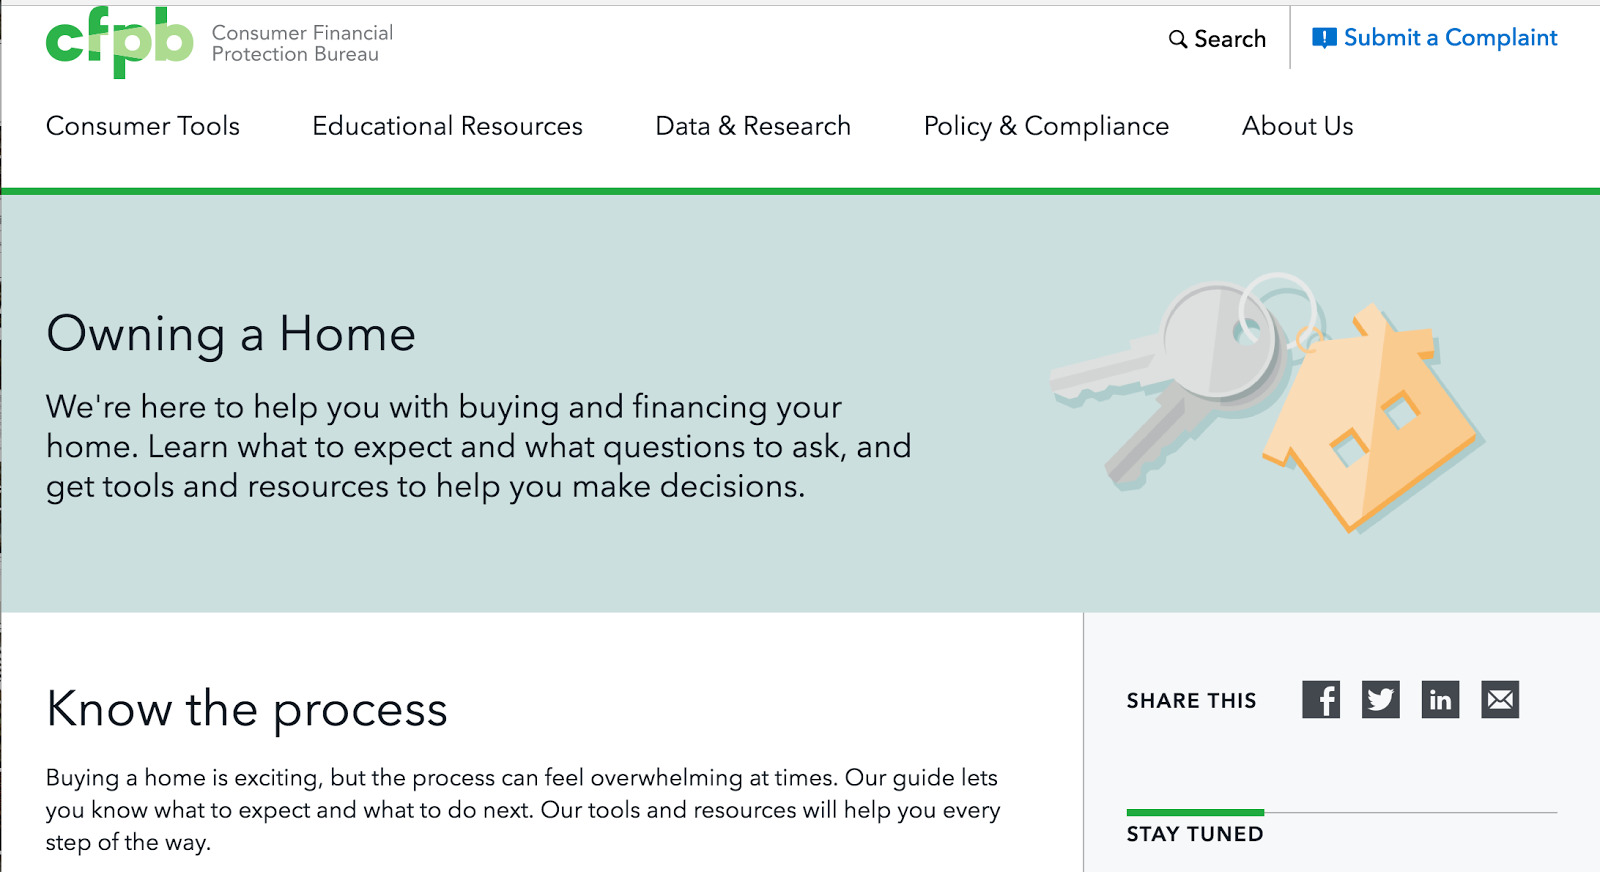 The Consumer Financial Protection Bureau's Owning a Home feature.